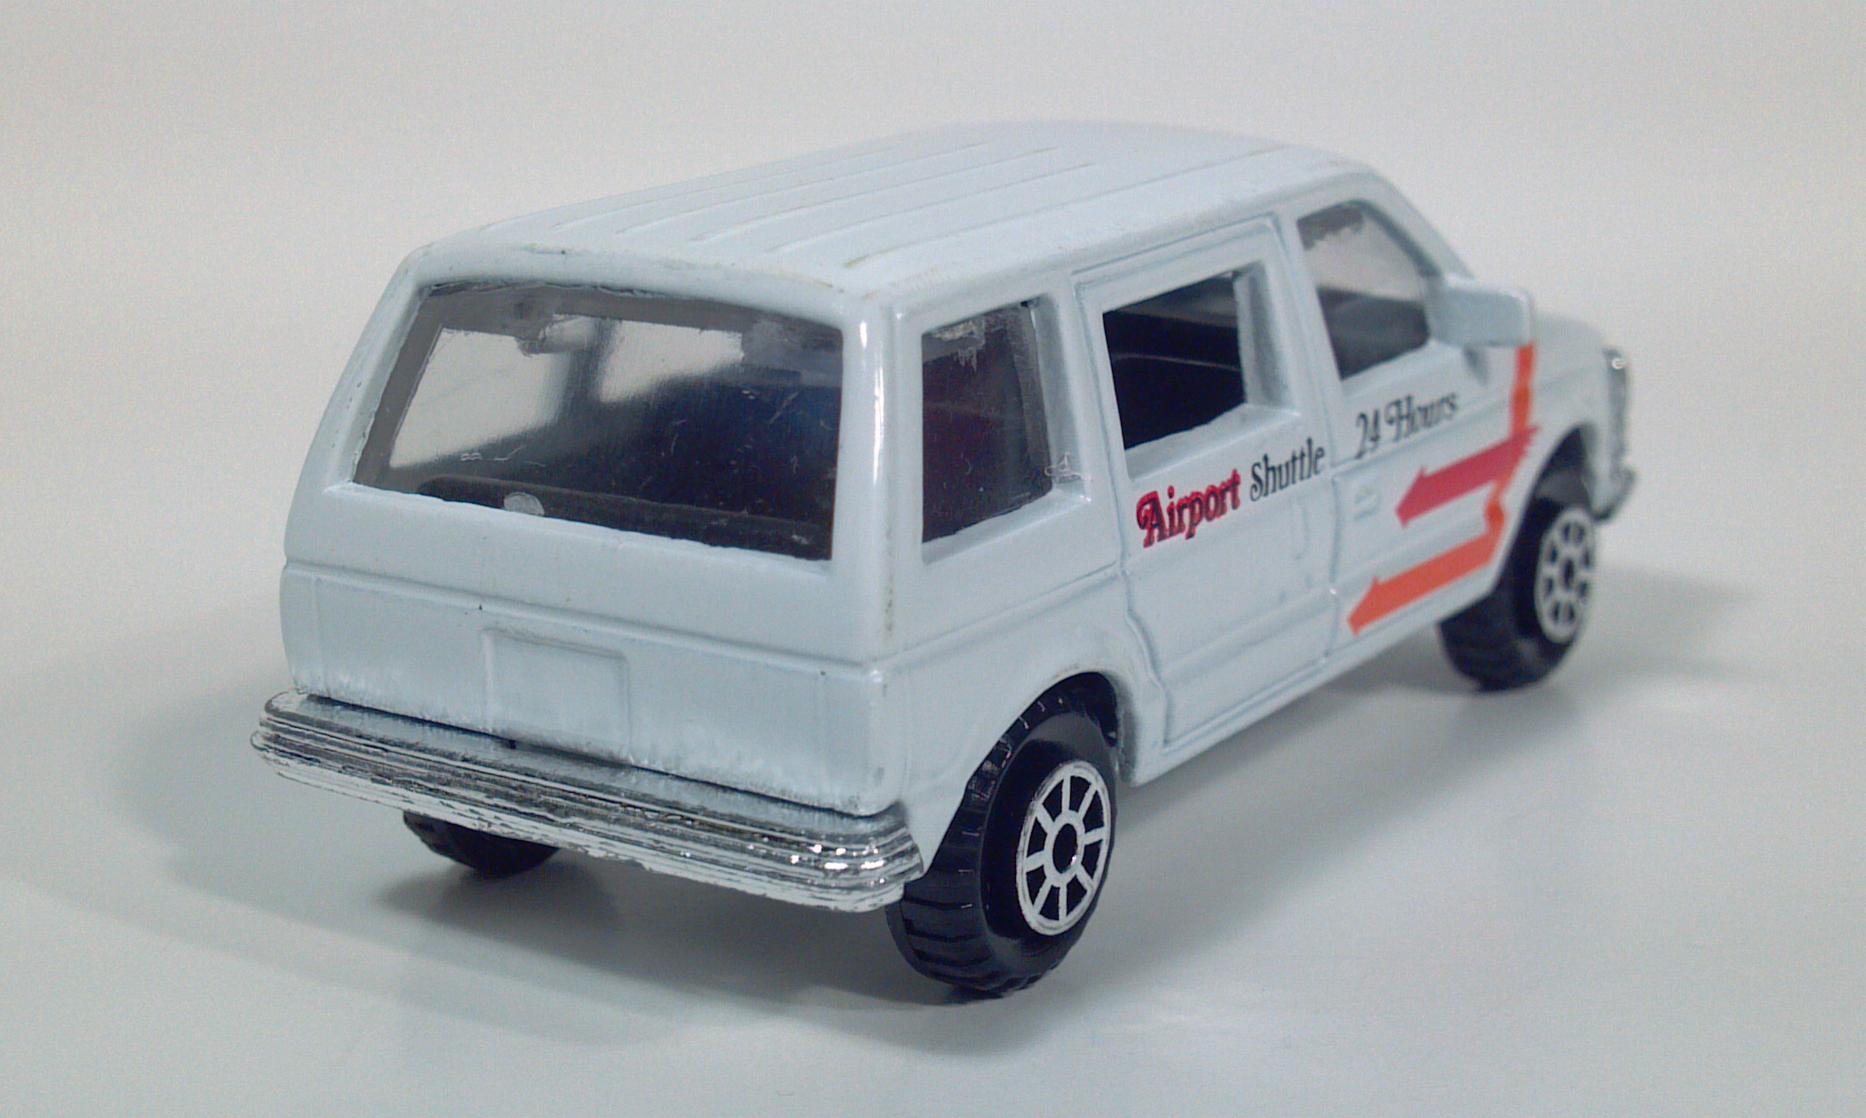 Road Champs Dodge Caravan Plymouth Voyager Van Diecast Scale Model Toy on 1999 Dodge Dakota Toy